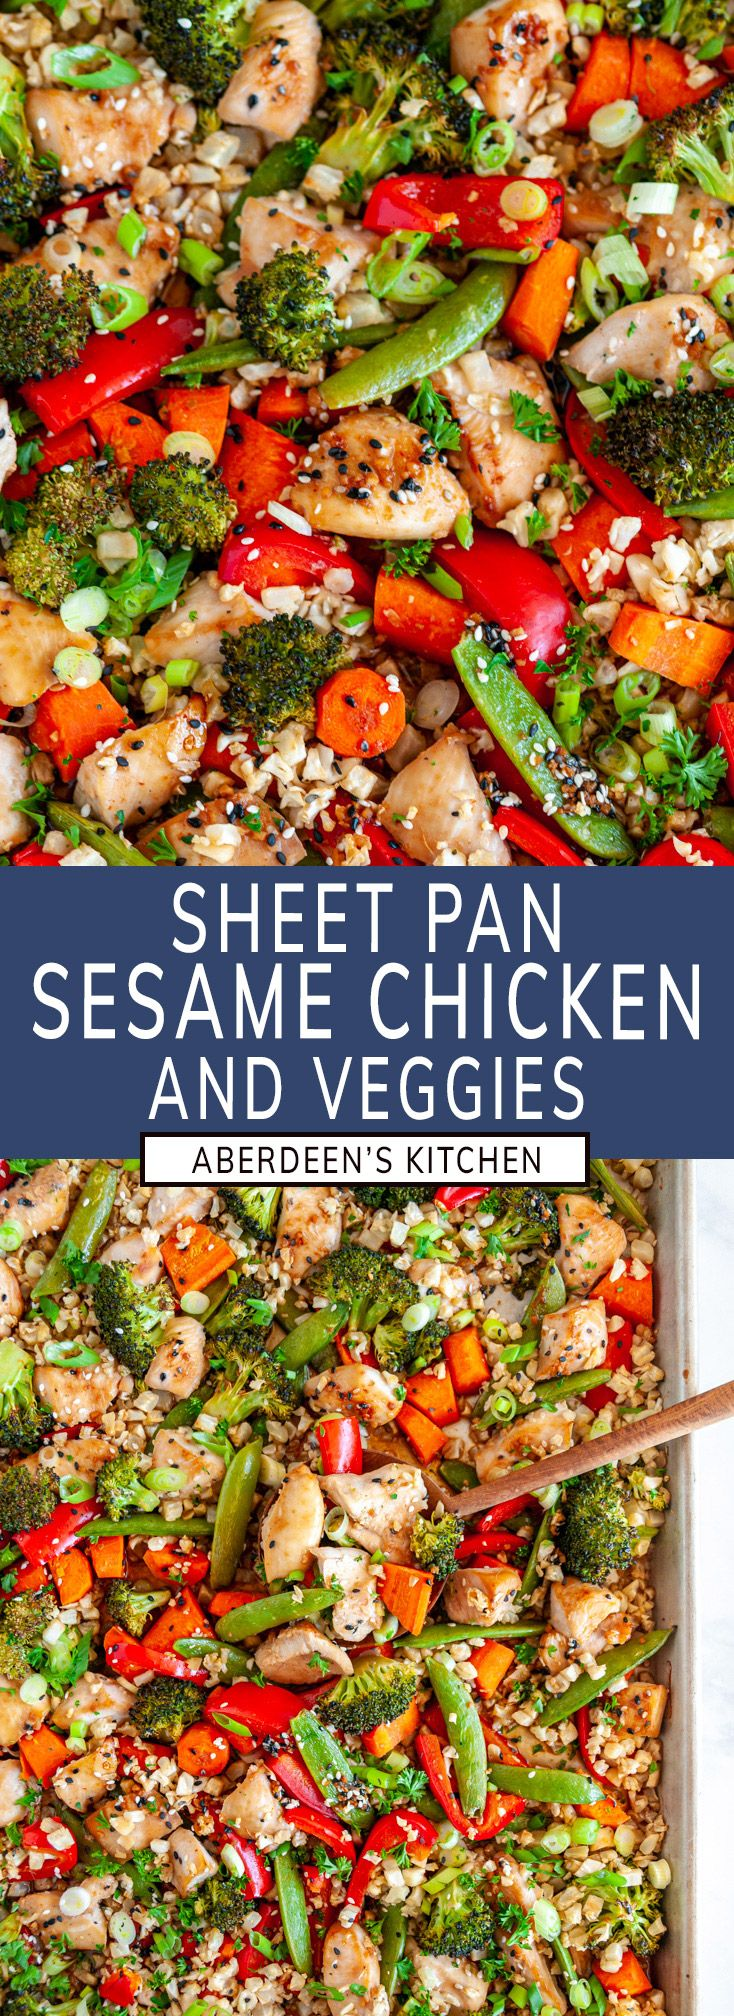 Sheet Pan Sesame Chicken with Veggies – Quick, easy, gluten and dairy free full sesame chicken dinner and veggies done i…